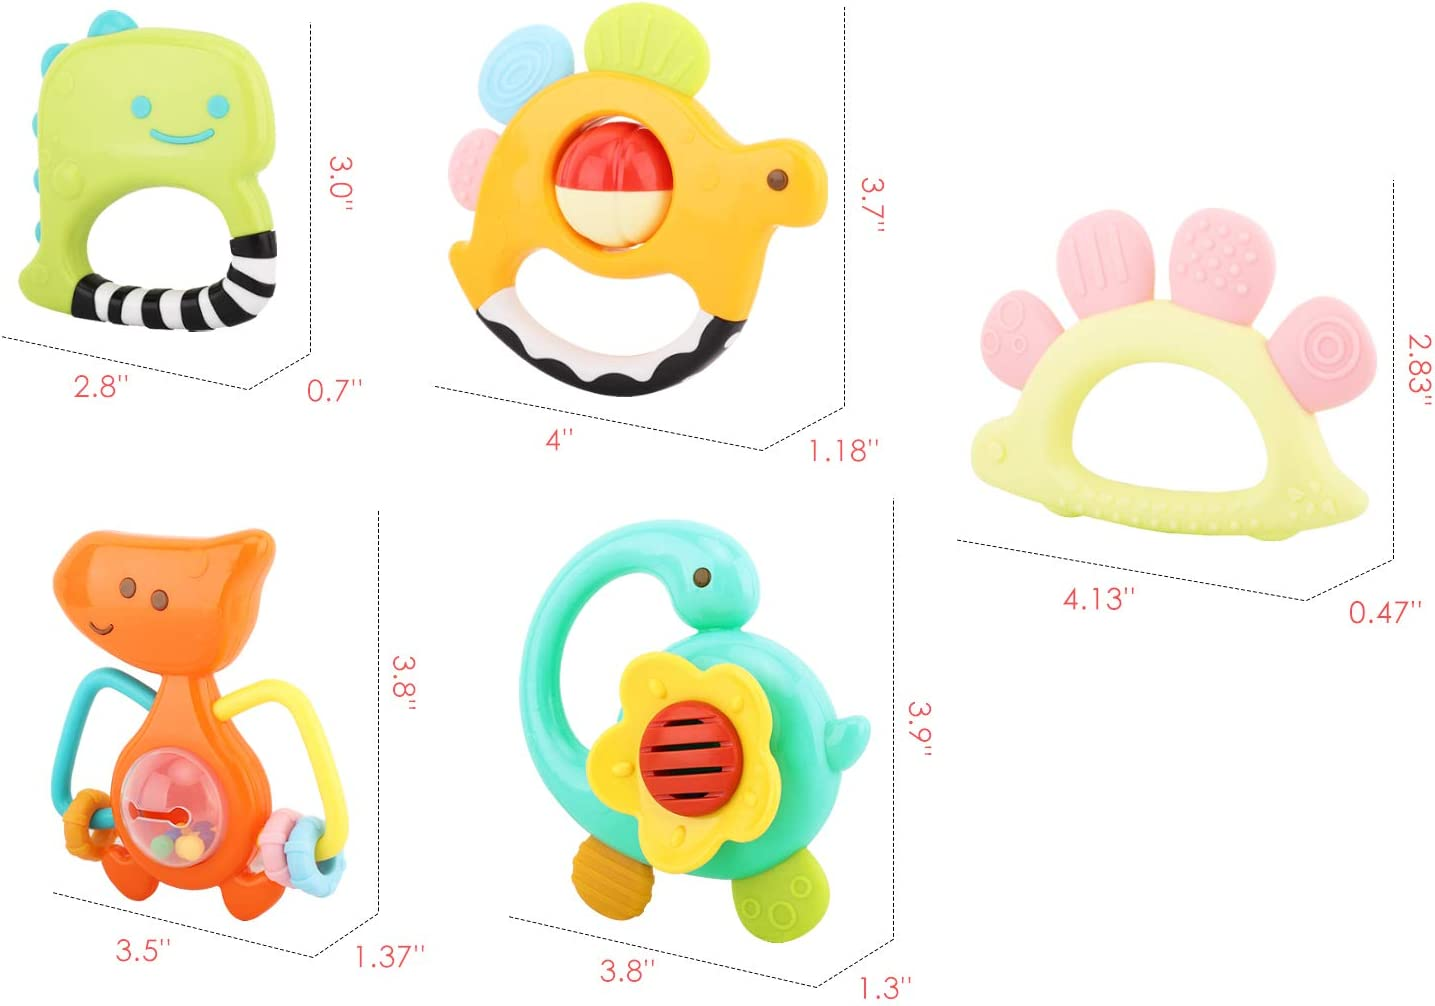 Soft Rattle Teething Toy for Pain Relief Zooawa Baby Teething Toy Set, Colorful BPA-Free Teether Dinosaur Rattles Toy Age-specific Design for Infants and Toddlers 5 PACK